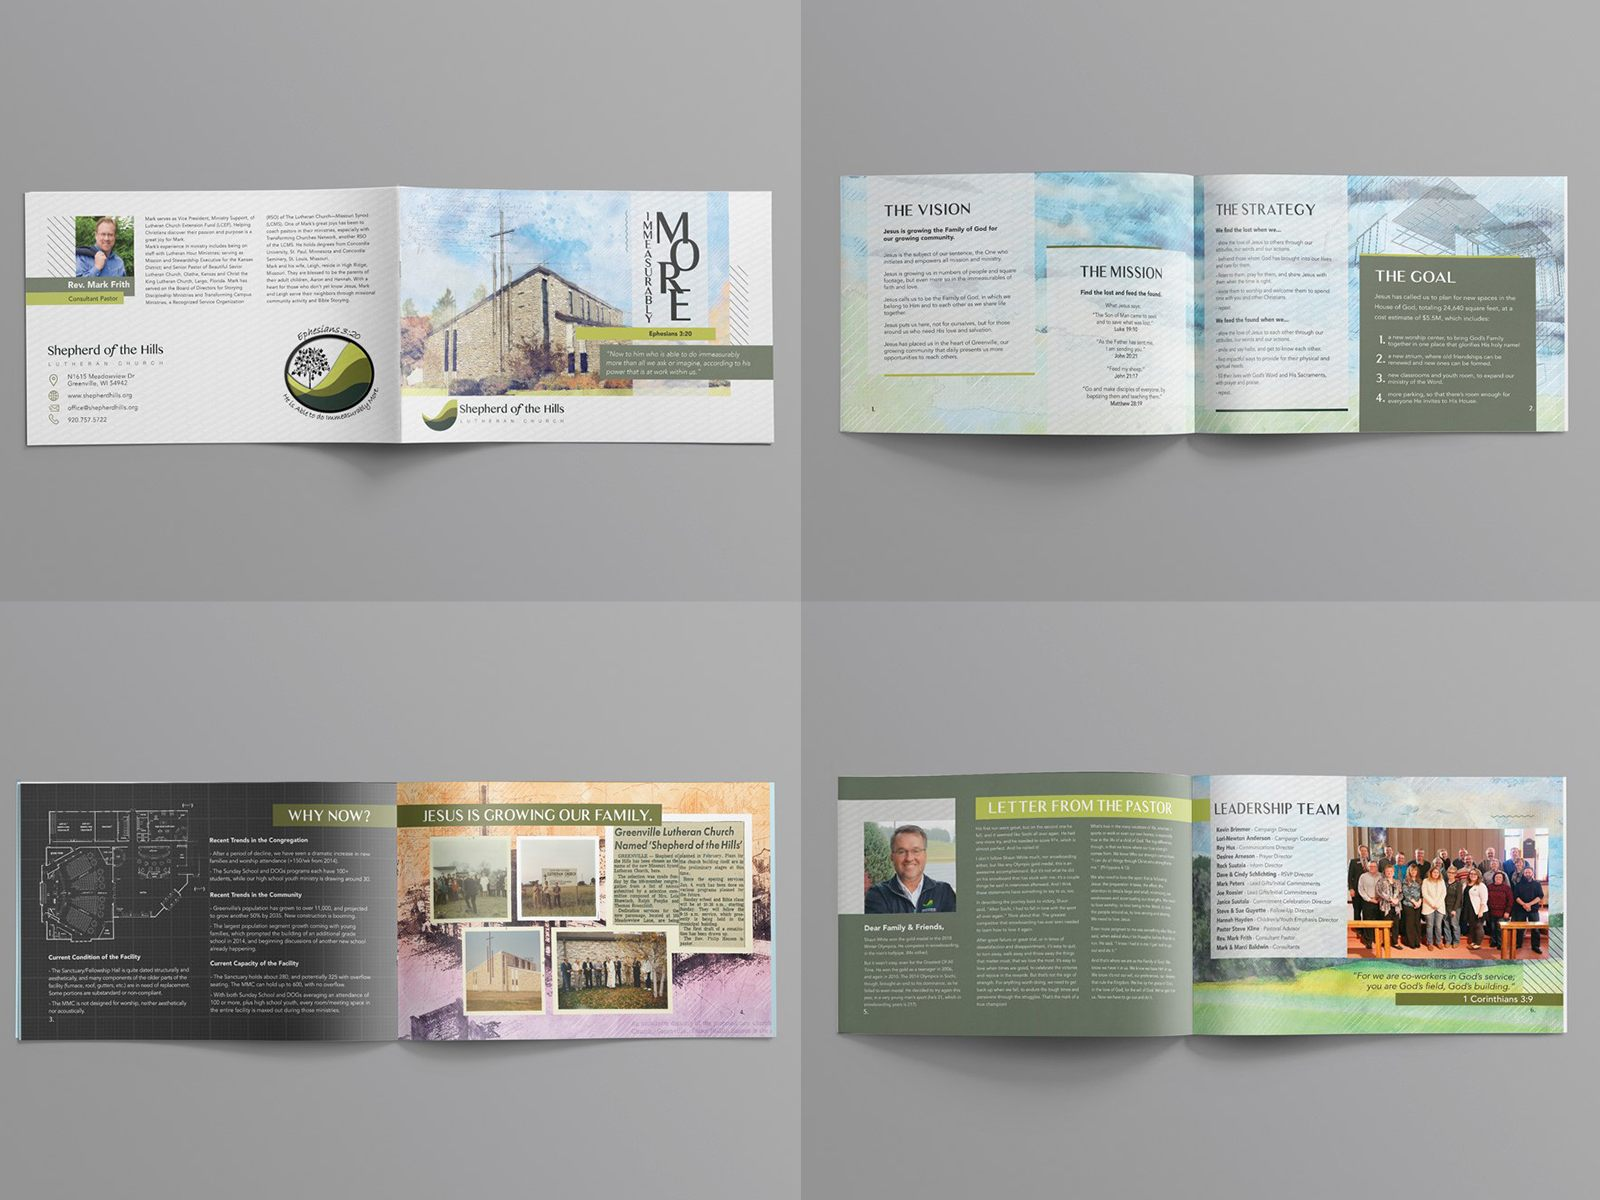 church capital campaign booklet or brochure design example theme